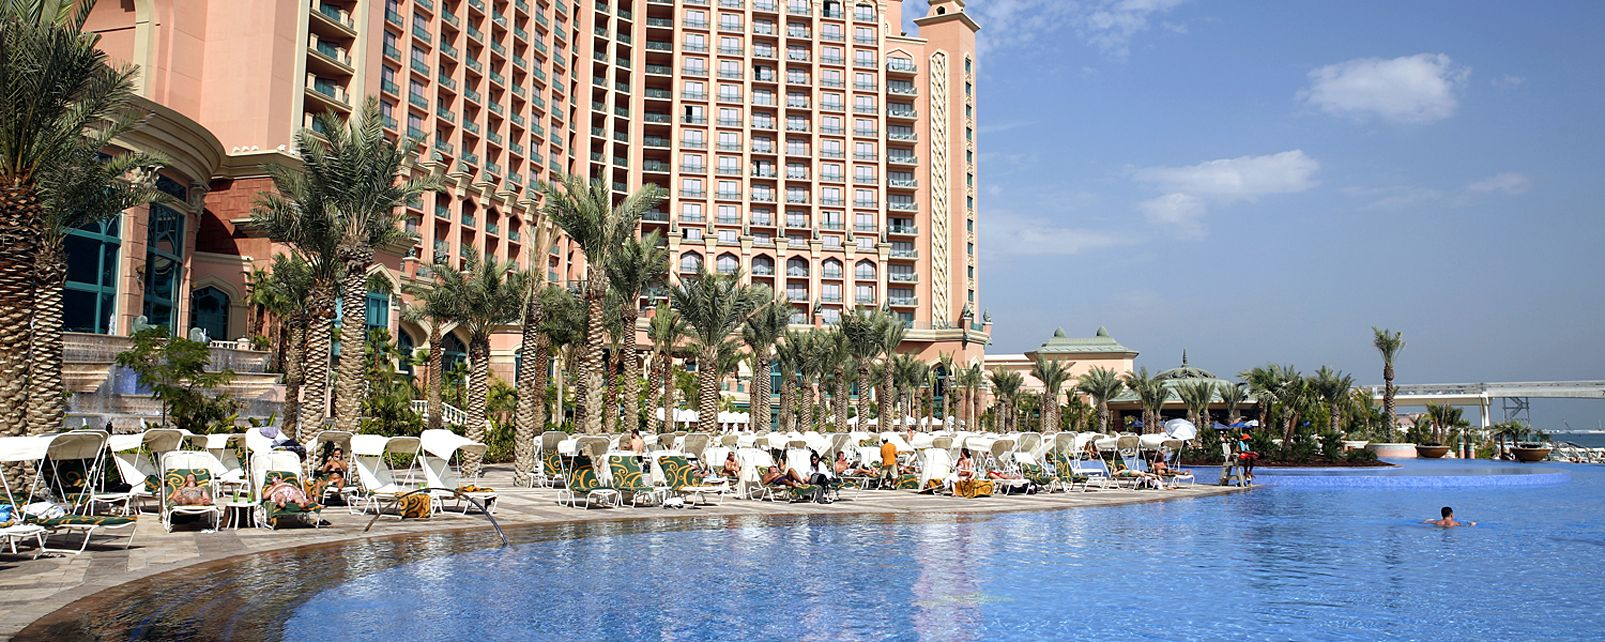 Hotel atlantis the palm in dubai united arab emirates for Atlantis piscine